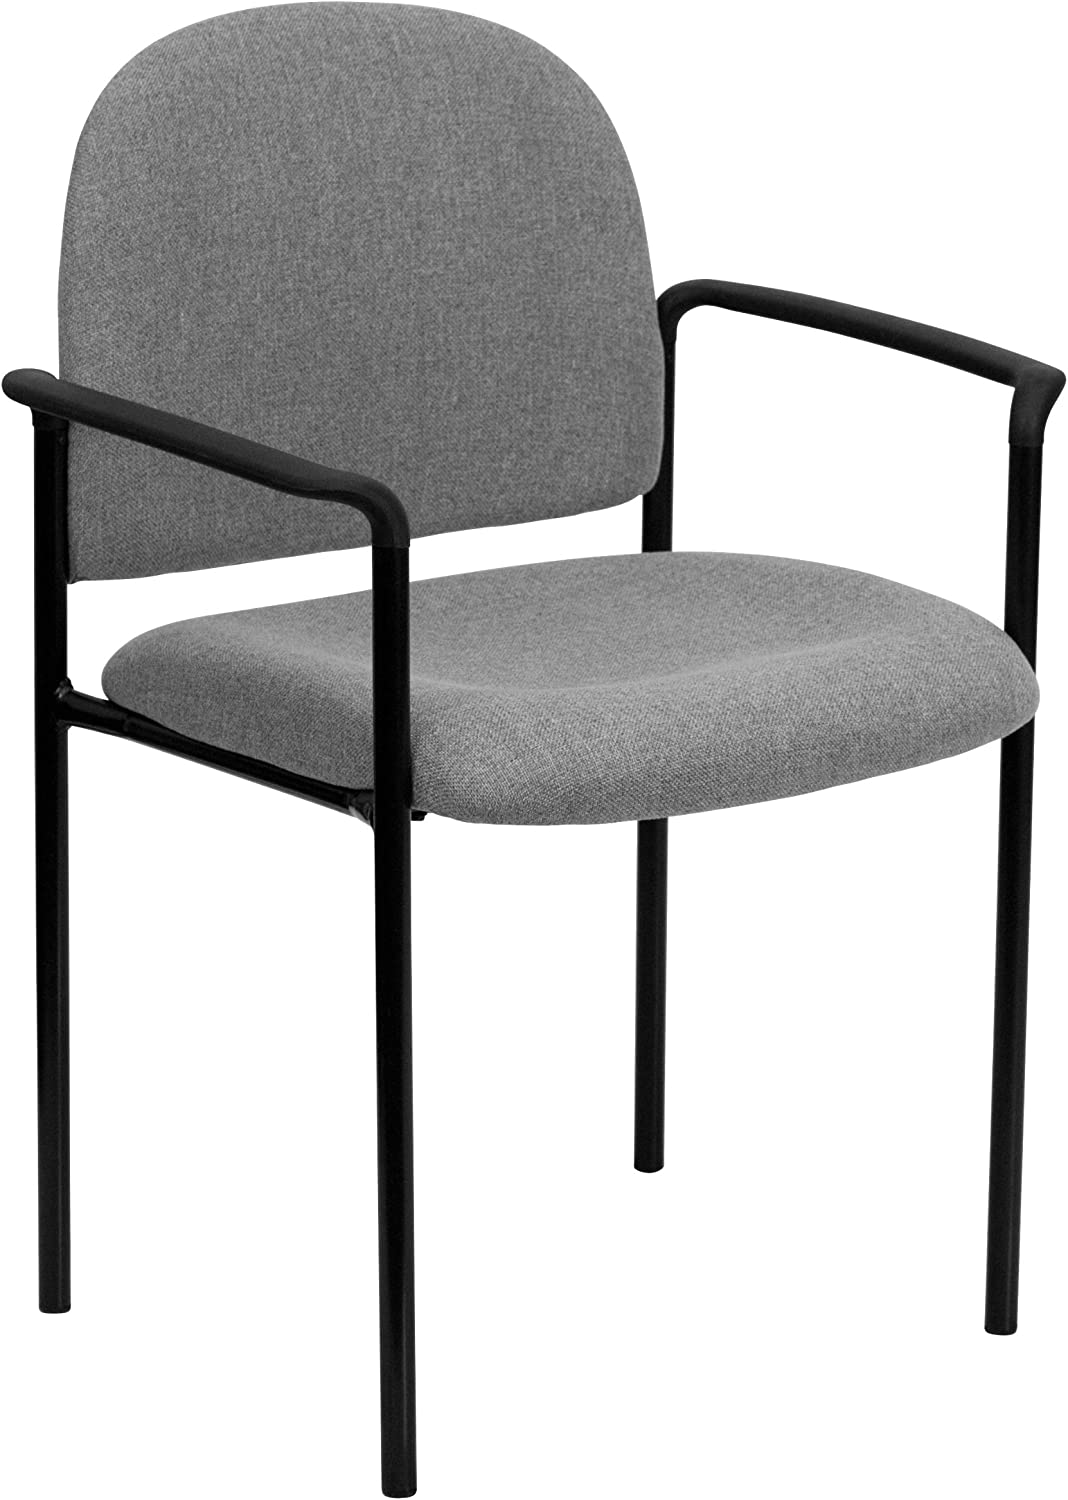 Flash Furniture Comfort Gray Fabric Stackable Steel Side Reception Chair with Arms